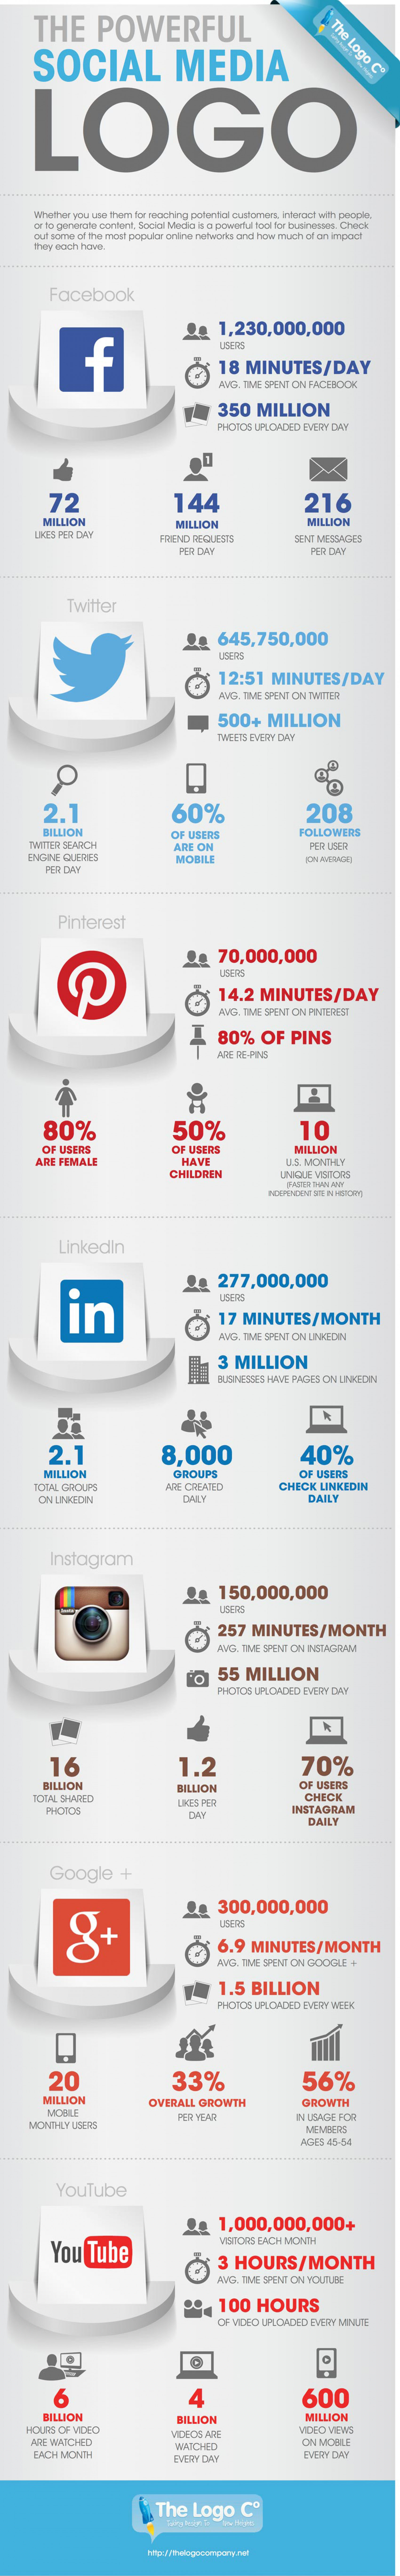 The Powerful Social Media Logo Infographic